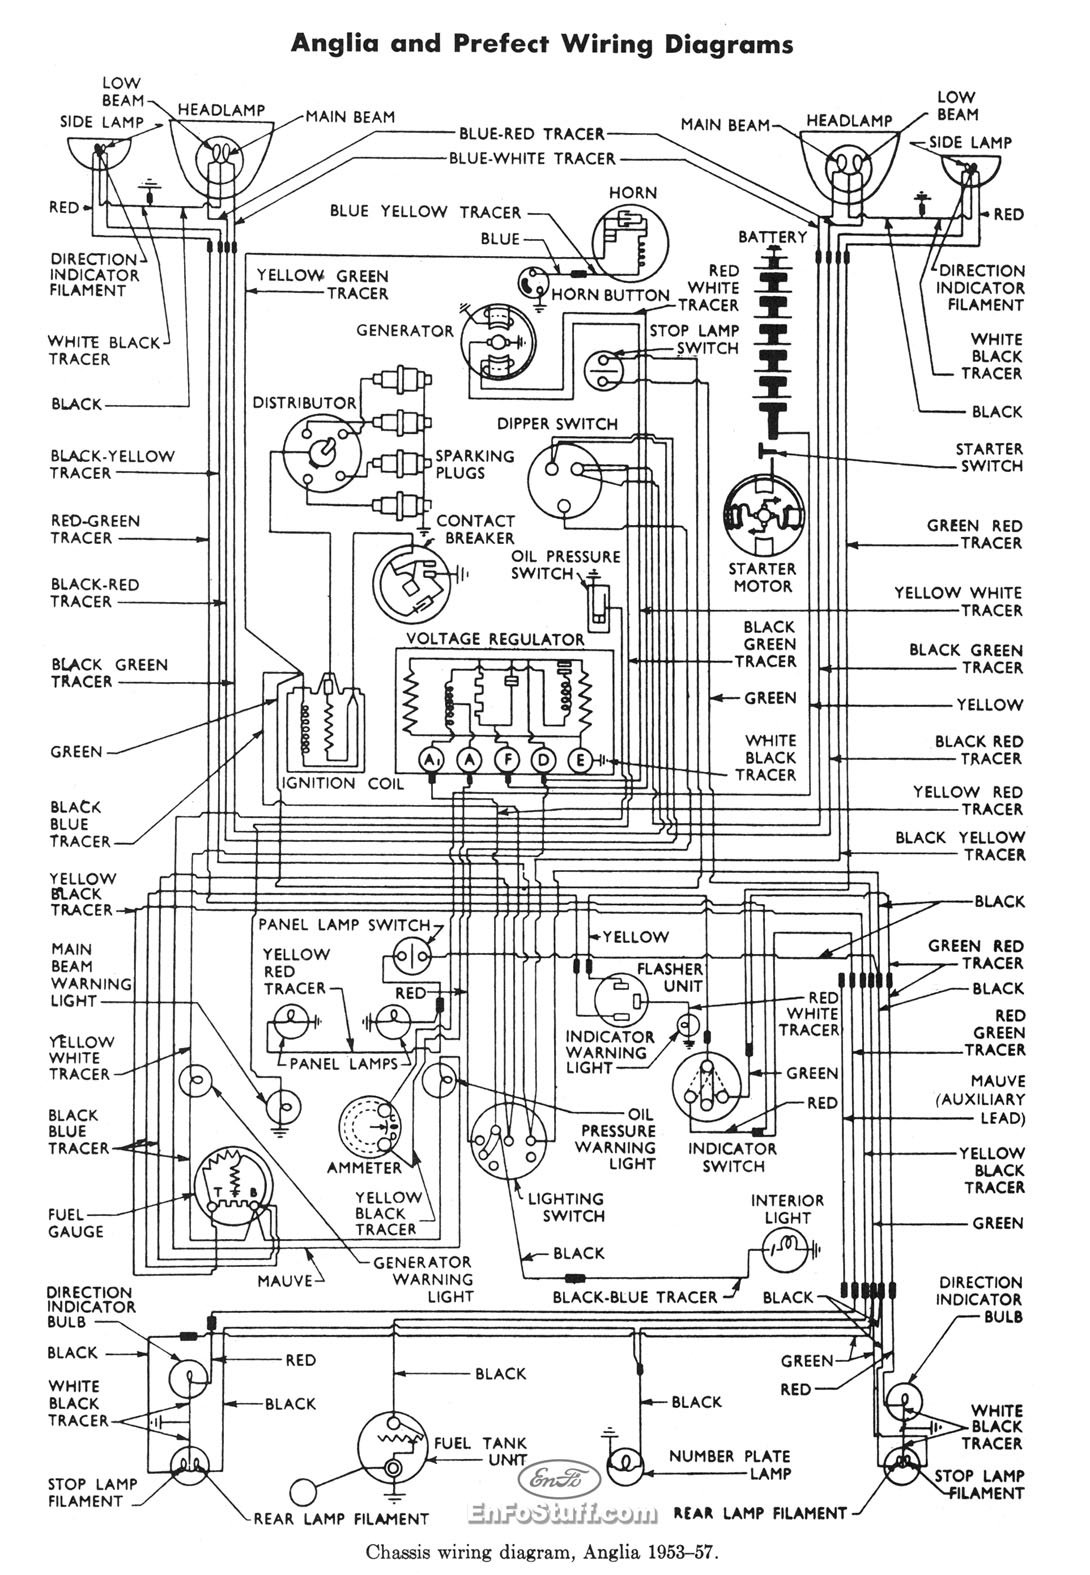 1970 Ford 600 Wiring Diagram - Wiring Diagrams List Ford Tractor Wiring Diagram Model on